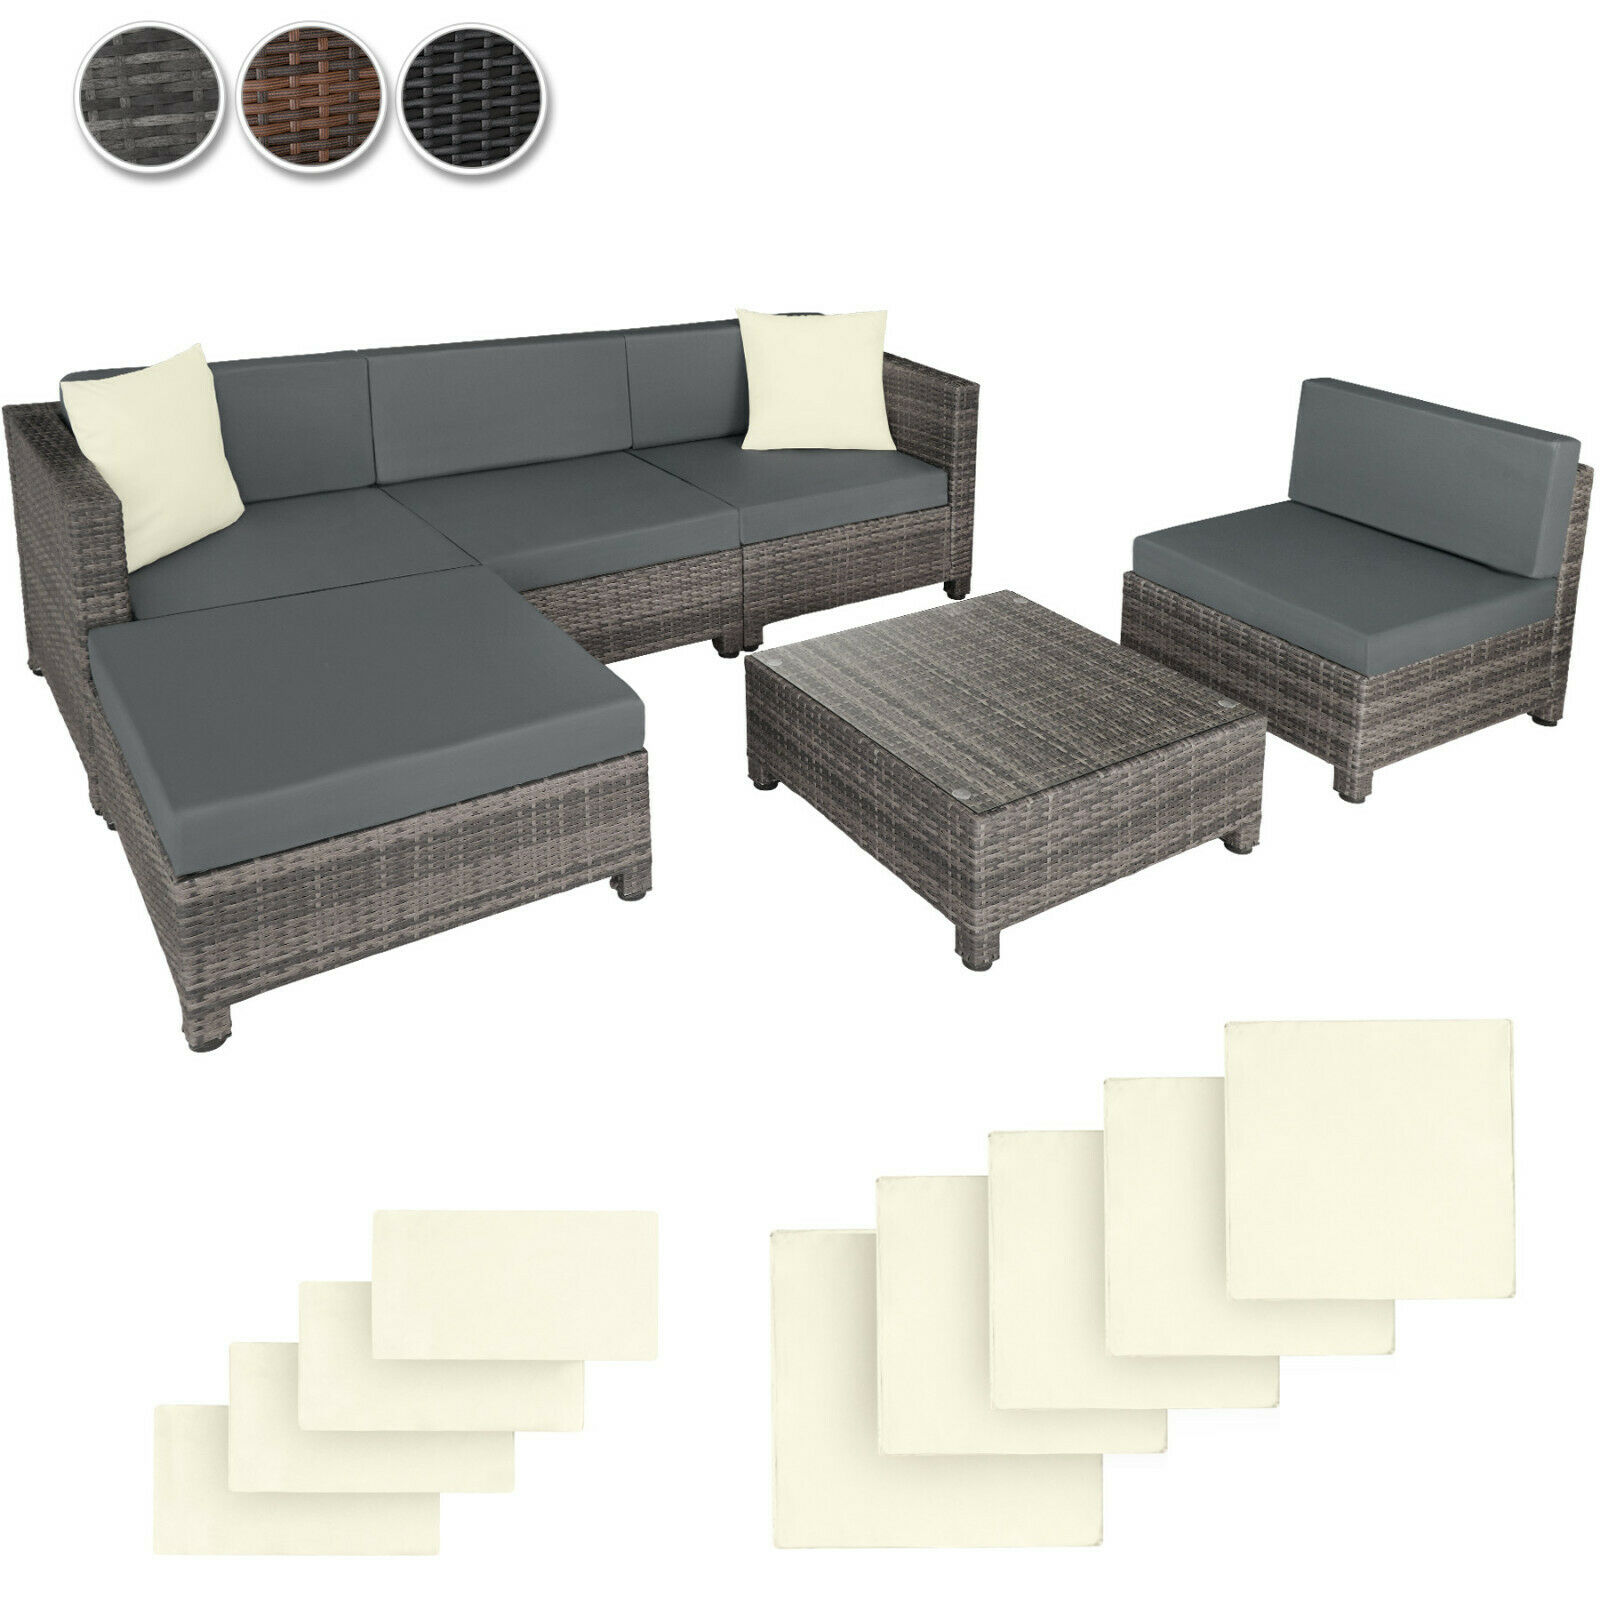 poly rattan aluminium sofa sitzgruppe gartenm bel lounge m bel 2 bez ge eur 449 99 picclick be. Black Bedroom Furniture Sets. Home Design Ideas